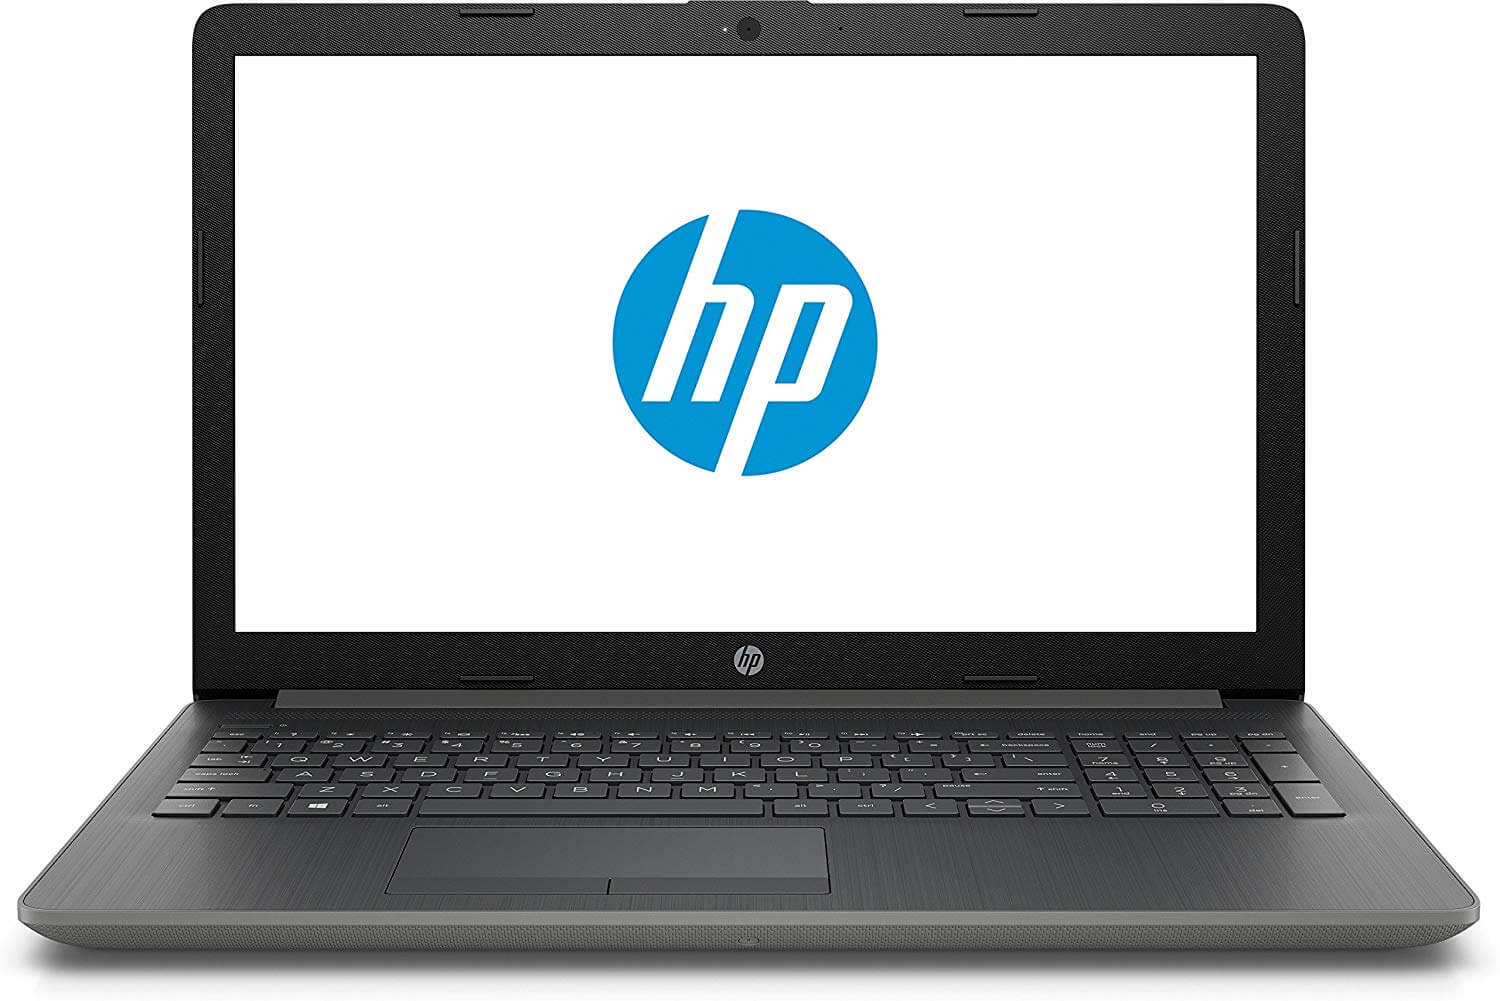 A Full HD Laptop with decent pentium processor – Pre-order HP